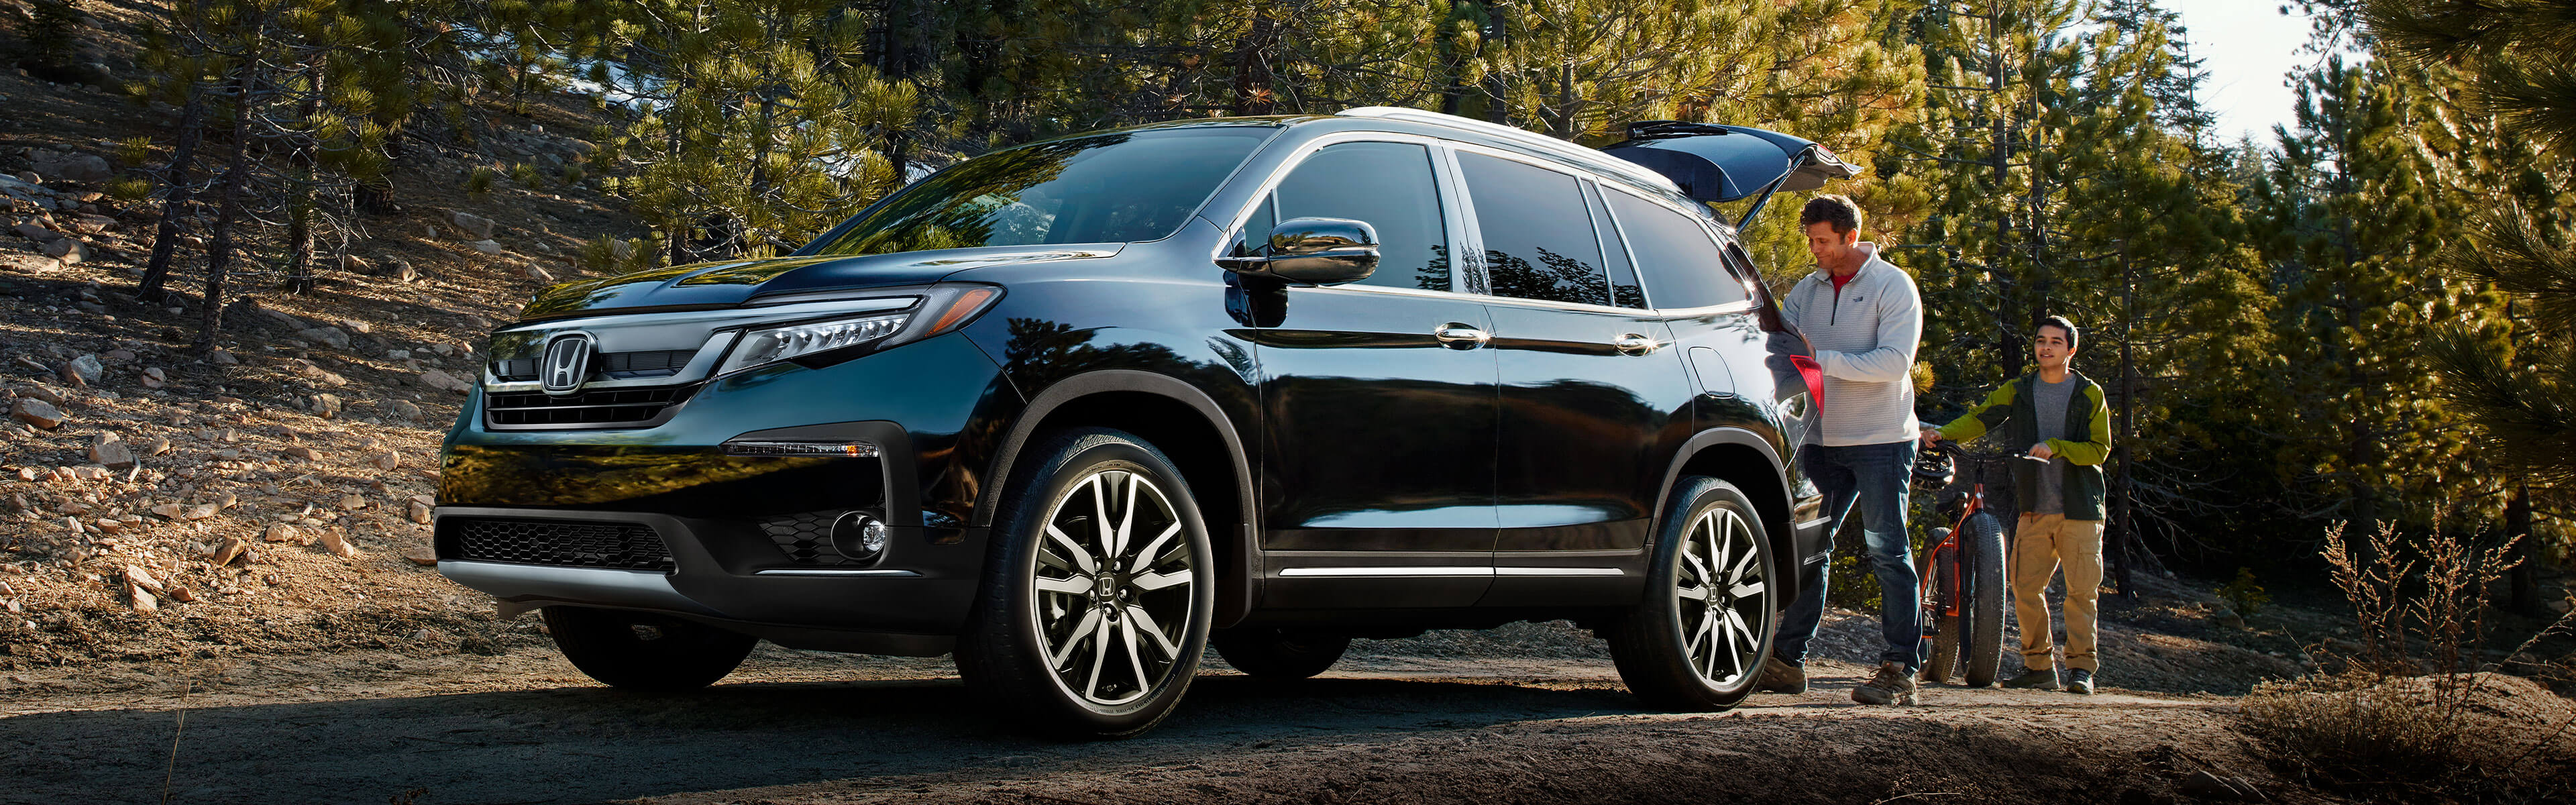 2018 Honda Pilot parked in forest